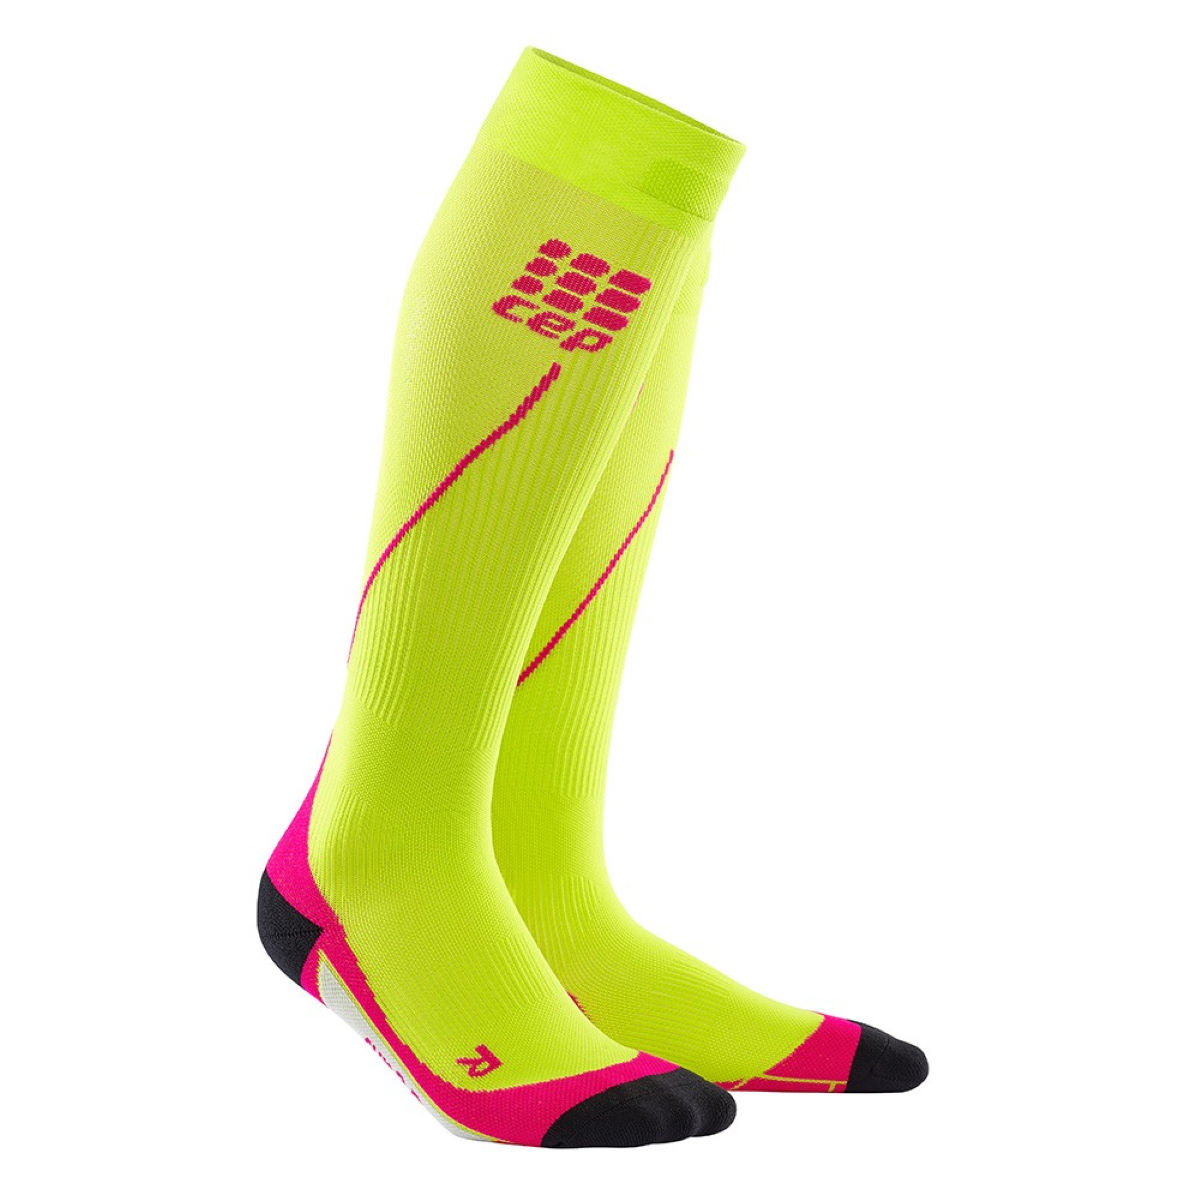 Chaussettes Femme CEP 2.0 (running, compression) - II Lime/Pink